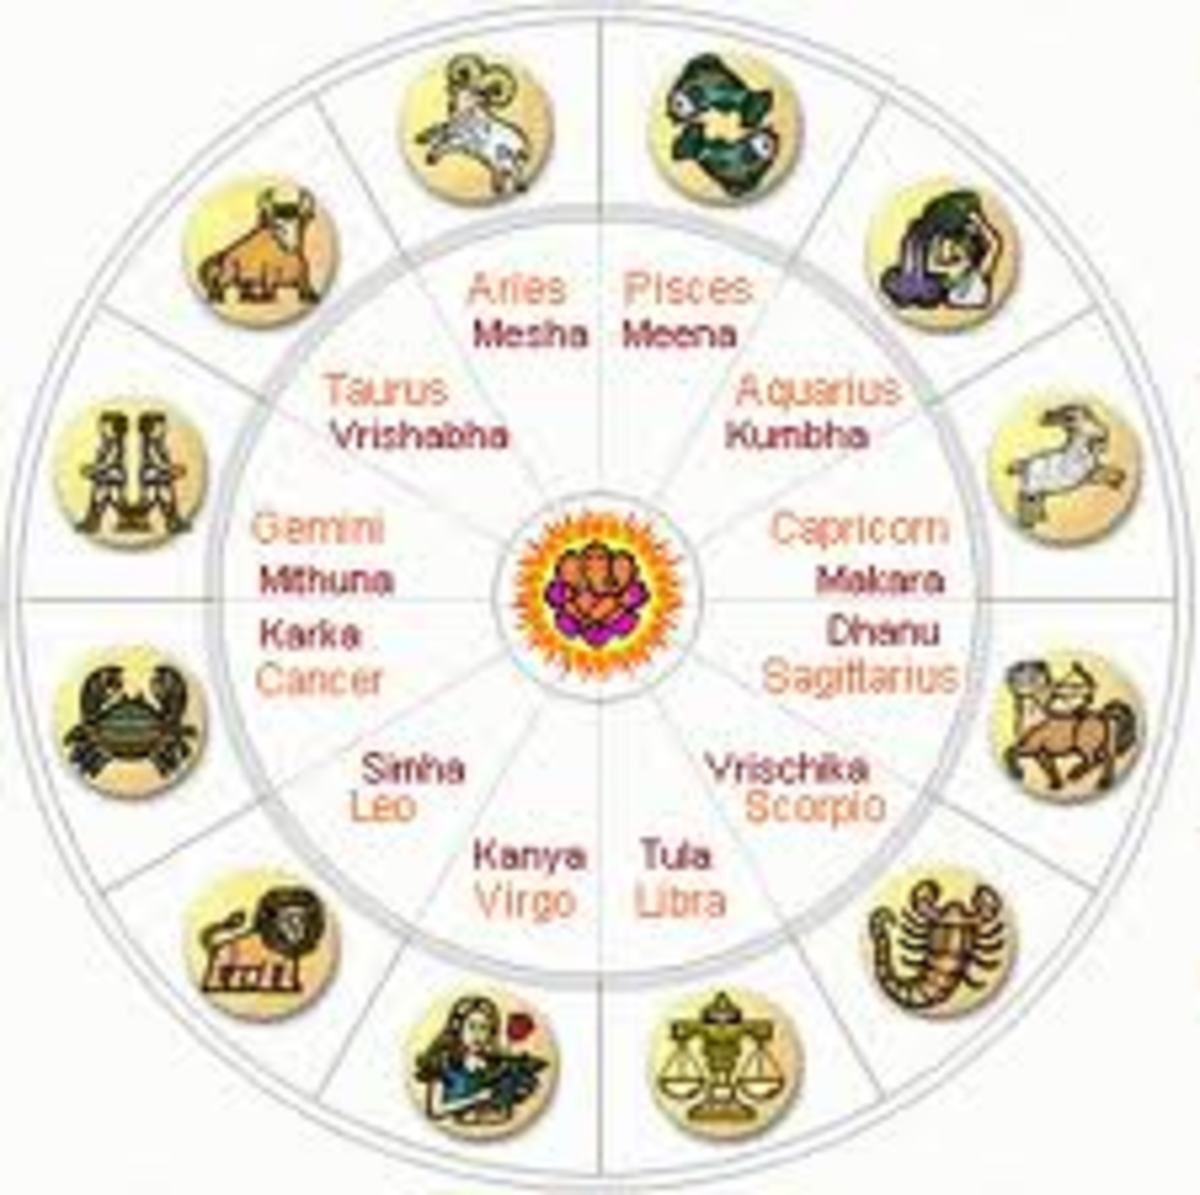 Zodiac Star Signs People Compatibilty And Characteristics Horoscope